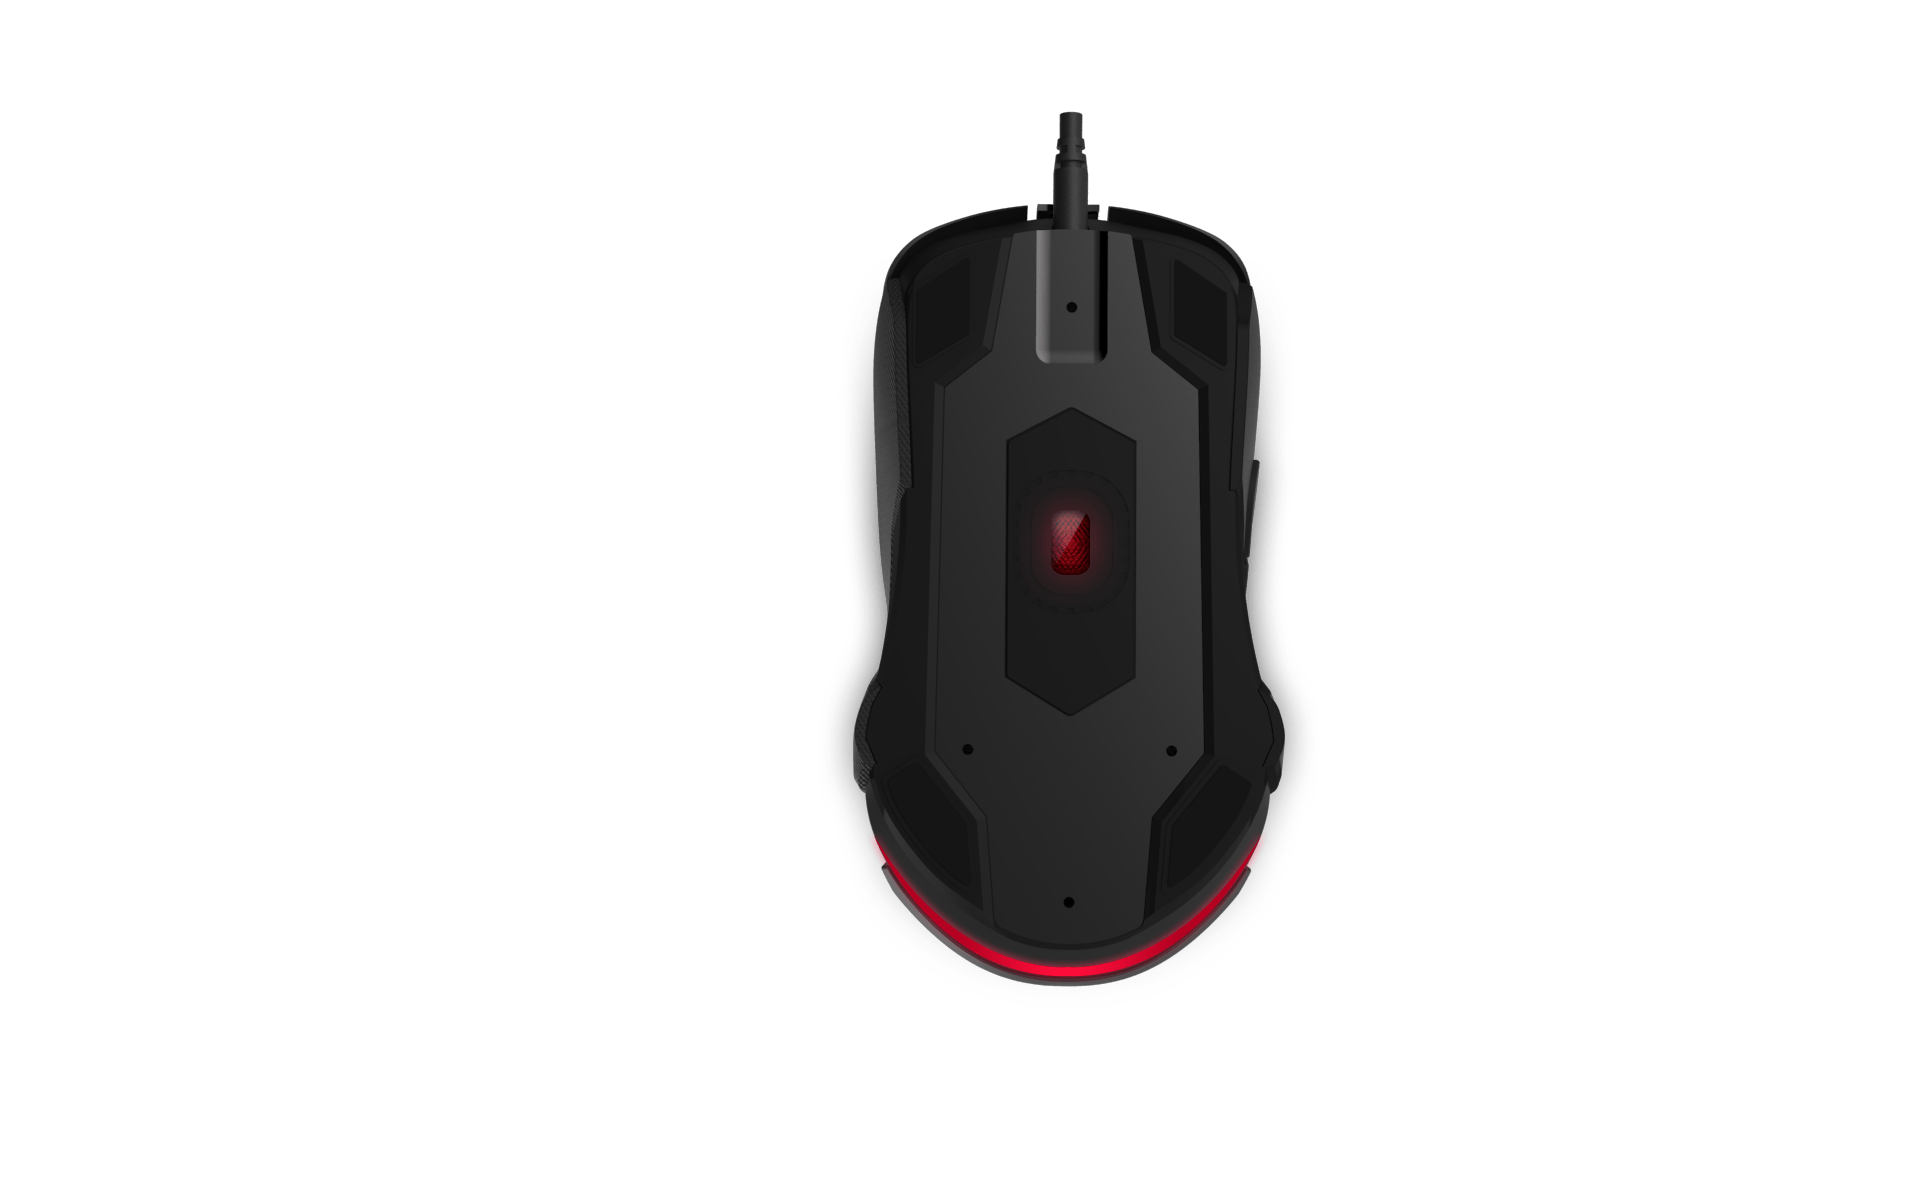 Kaffeemaschine Büro Amazon Asus Cerberus Fortus Gaming Mouse